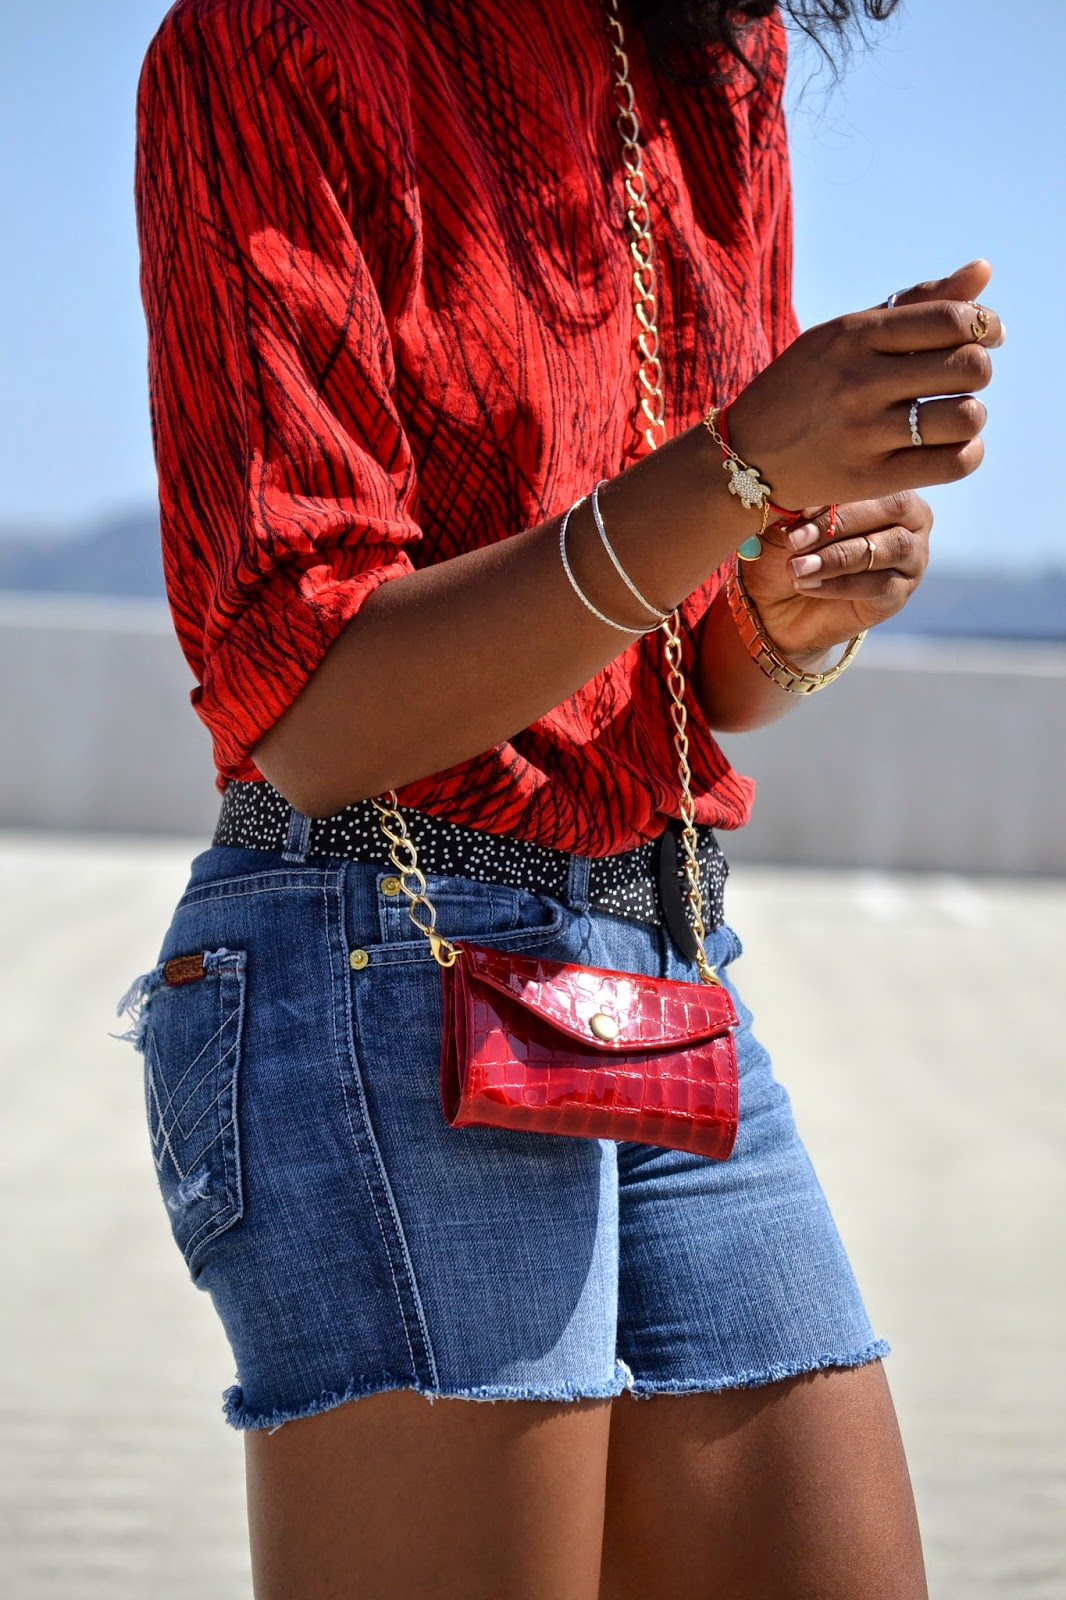 Wearing 7 For All Mankind denim cutoffs Vintage Dotted belt Gabbag crossbody bag CaravelleNY watch